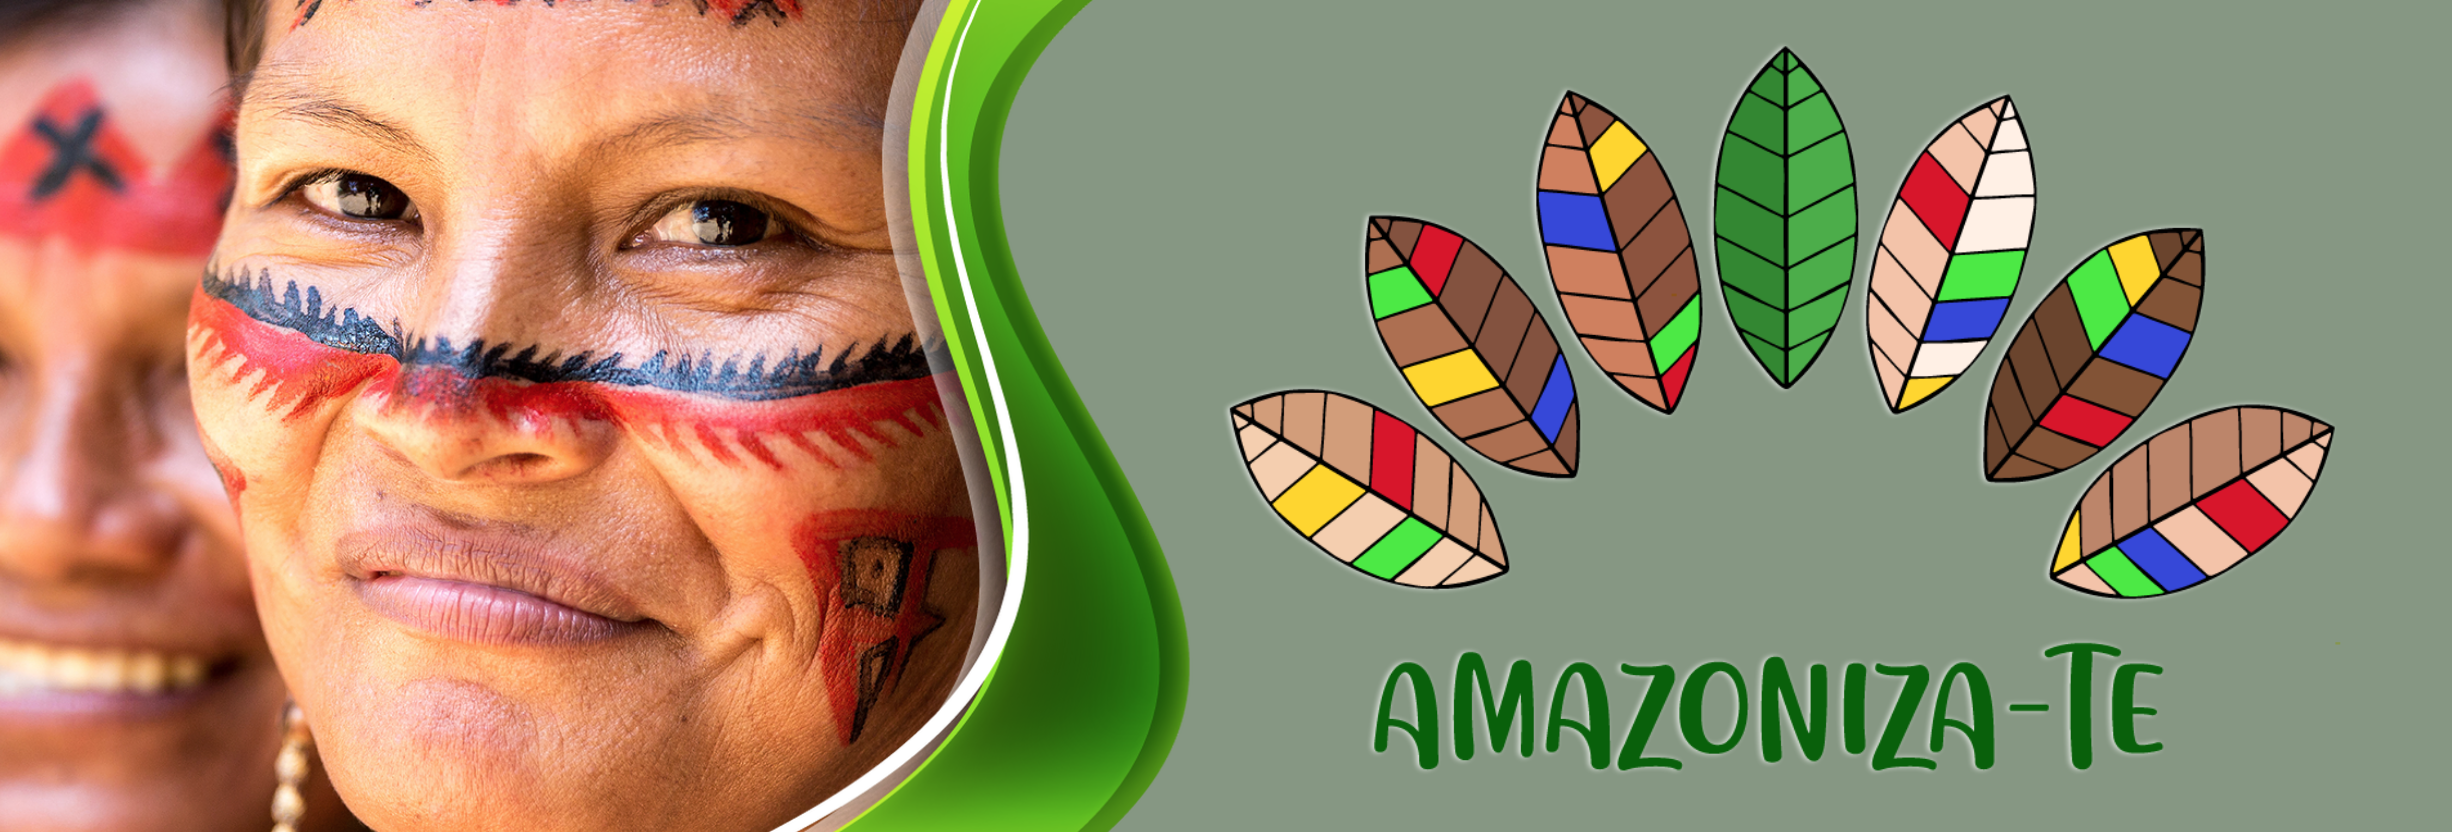 Amazonize yourself: An invitation, a call, and an opportunity to express solidarity with the forest and with the peoples of the region